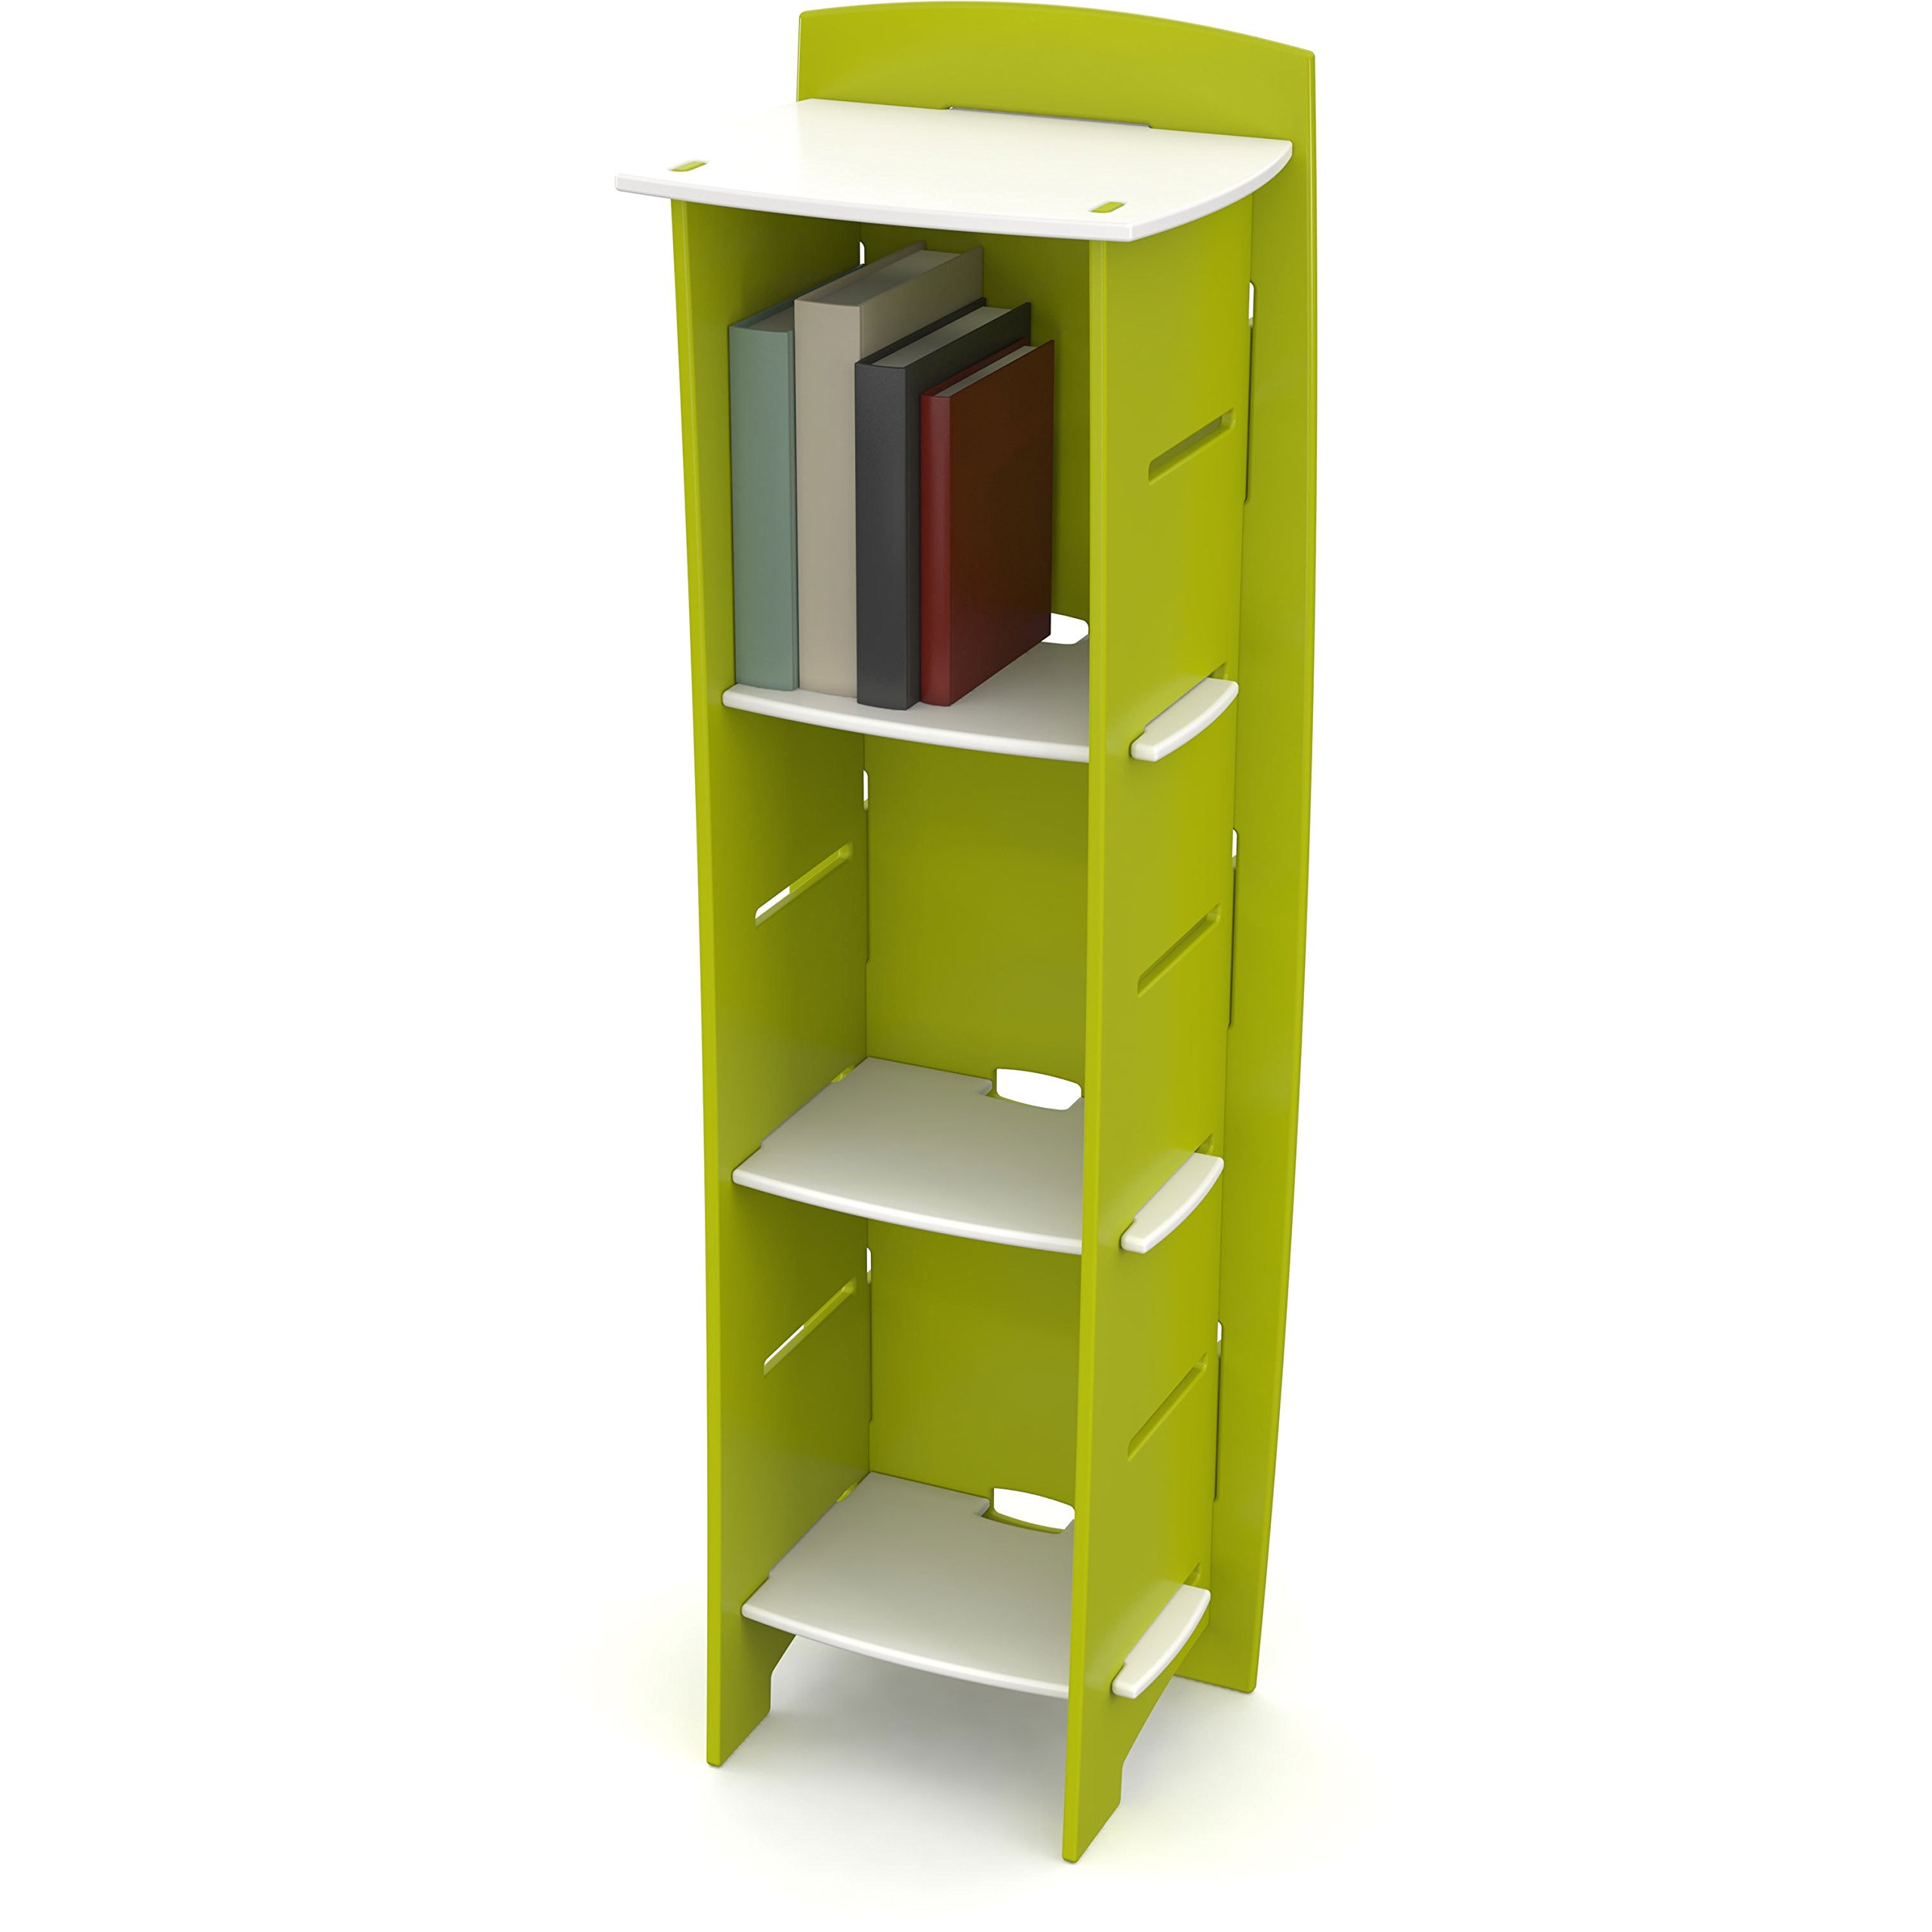 Legaré Kids Furniture Frog Series Collection, No Tools Assembly 3-Shelf Bookcase, Lime Green and White